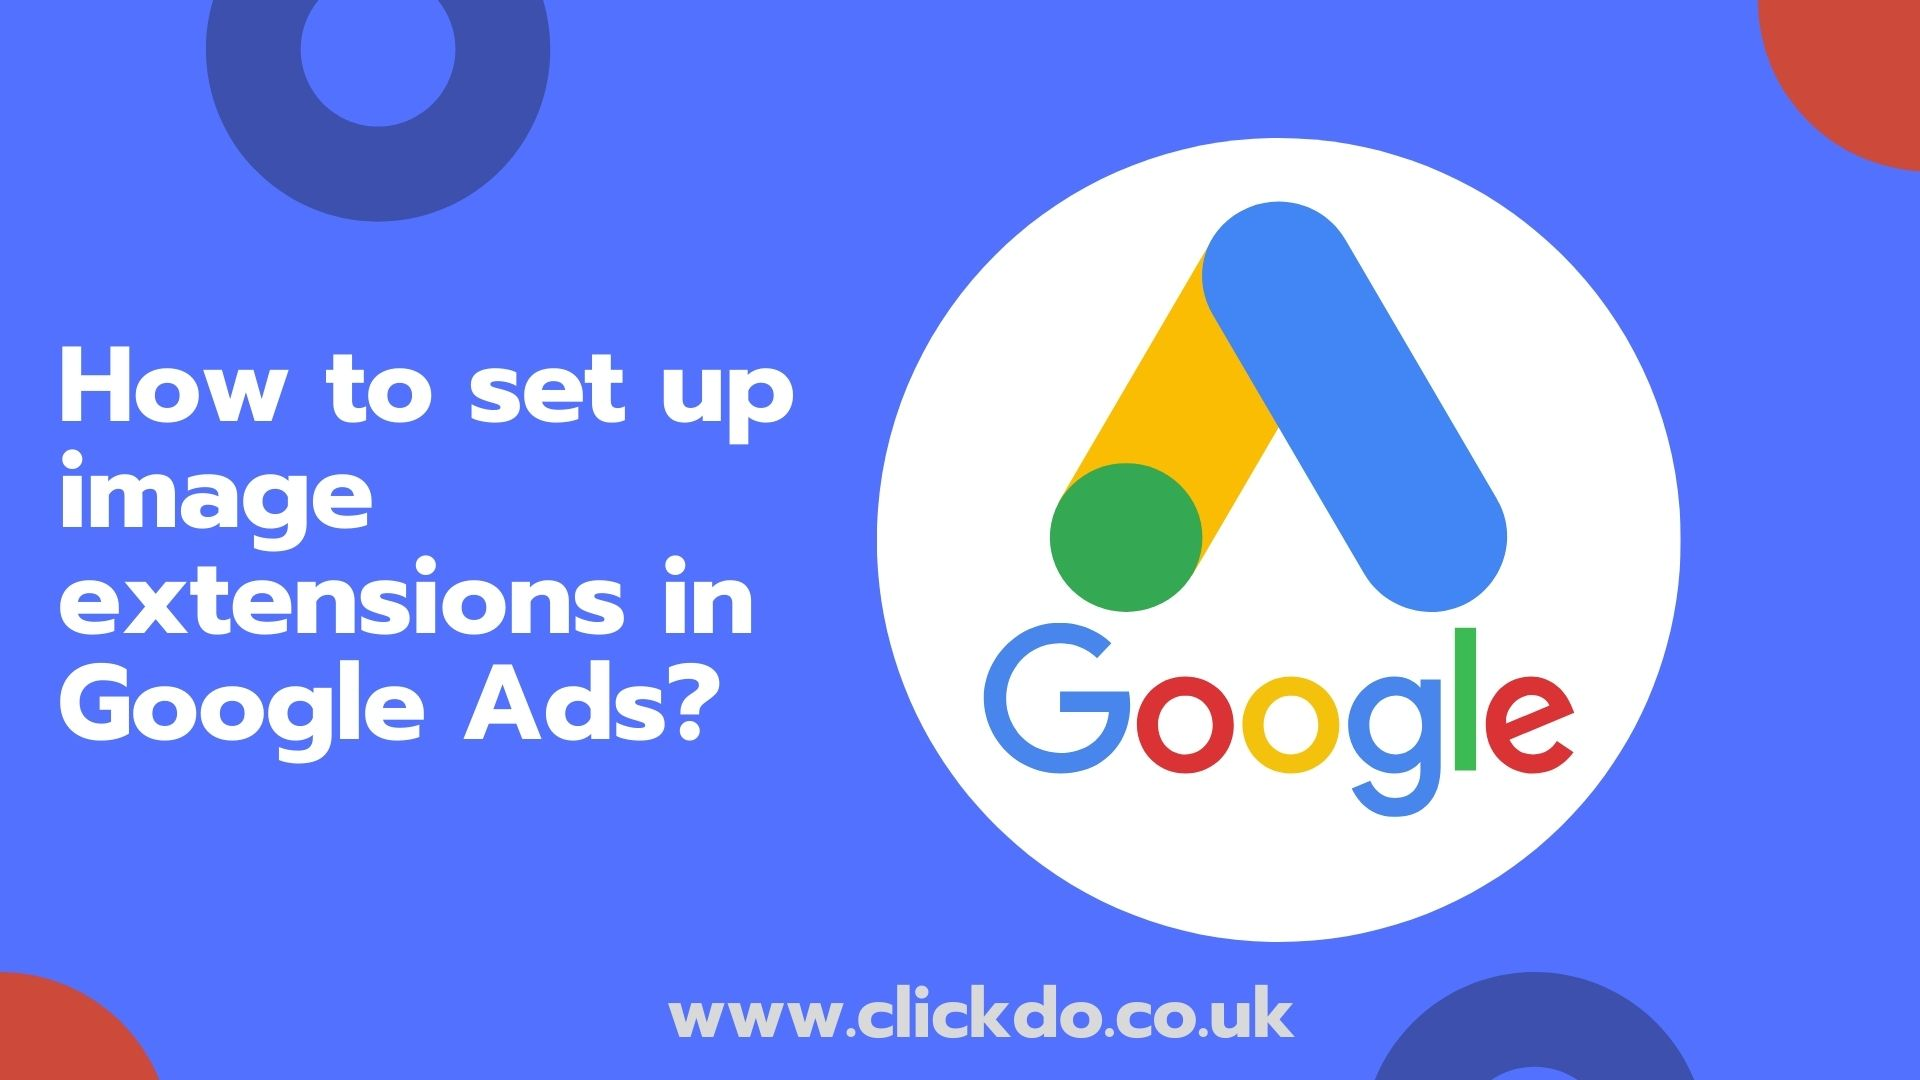 How to set up image extensions in Google Ads